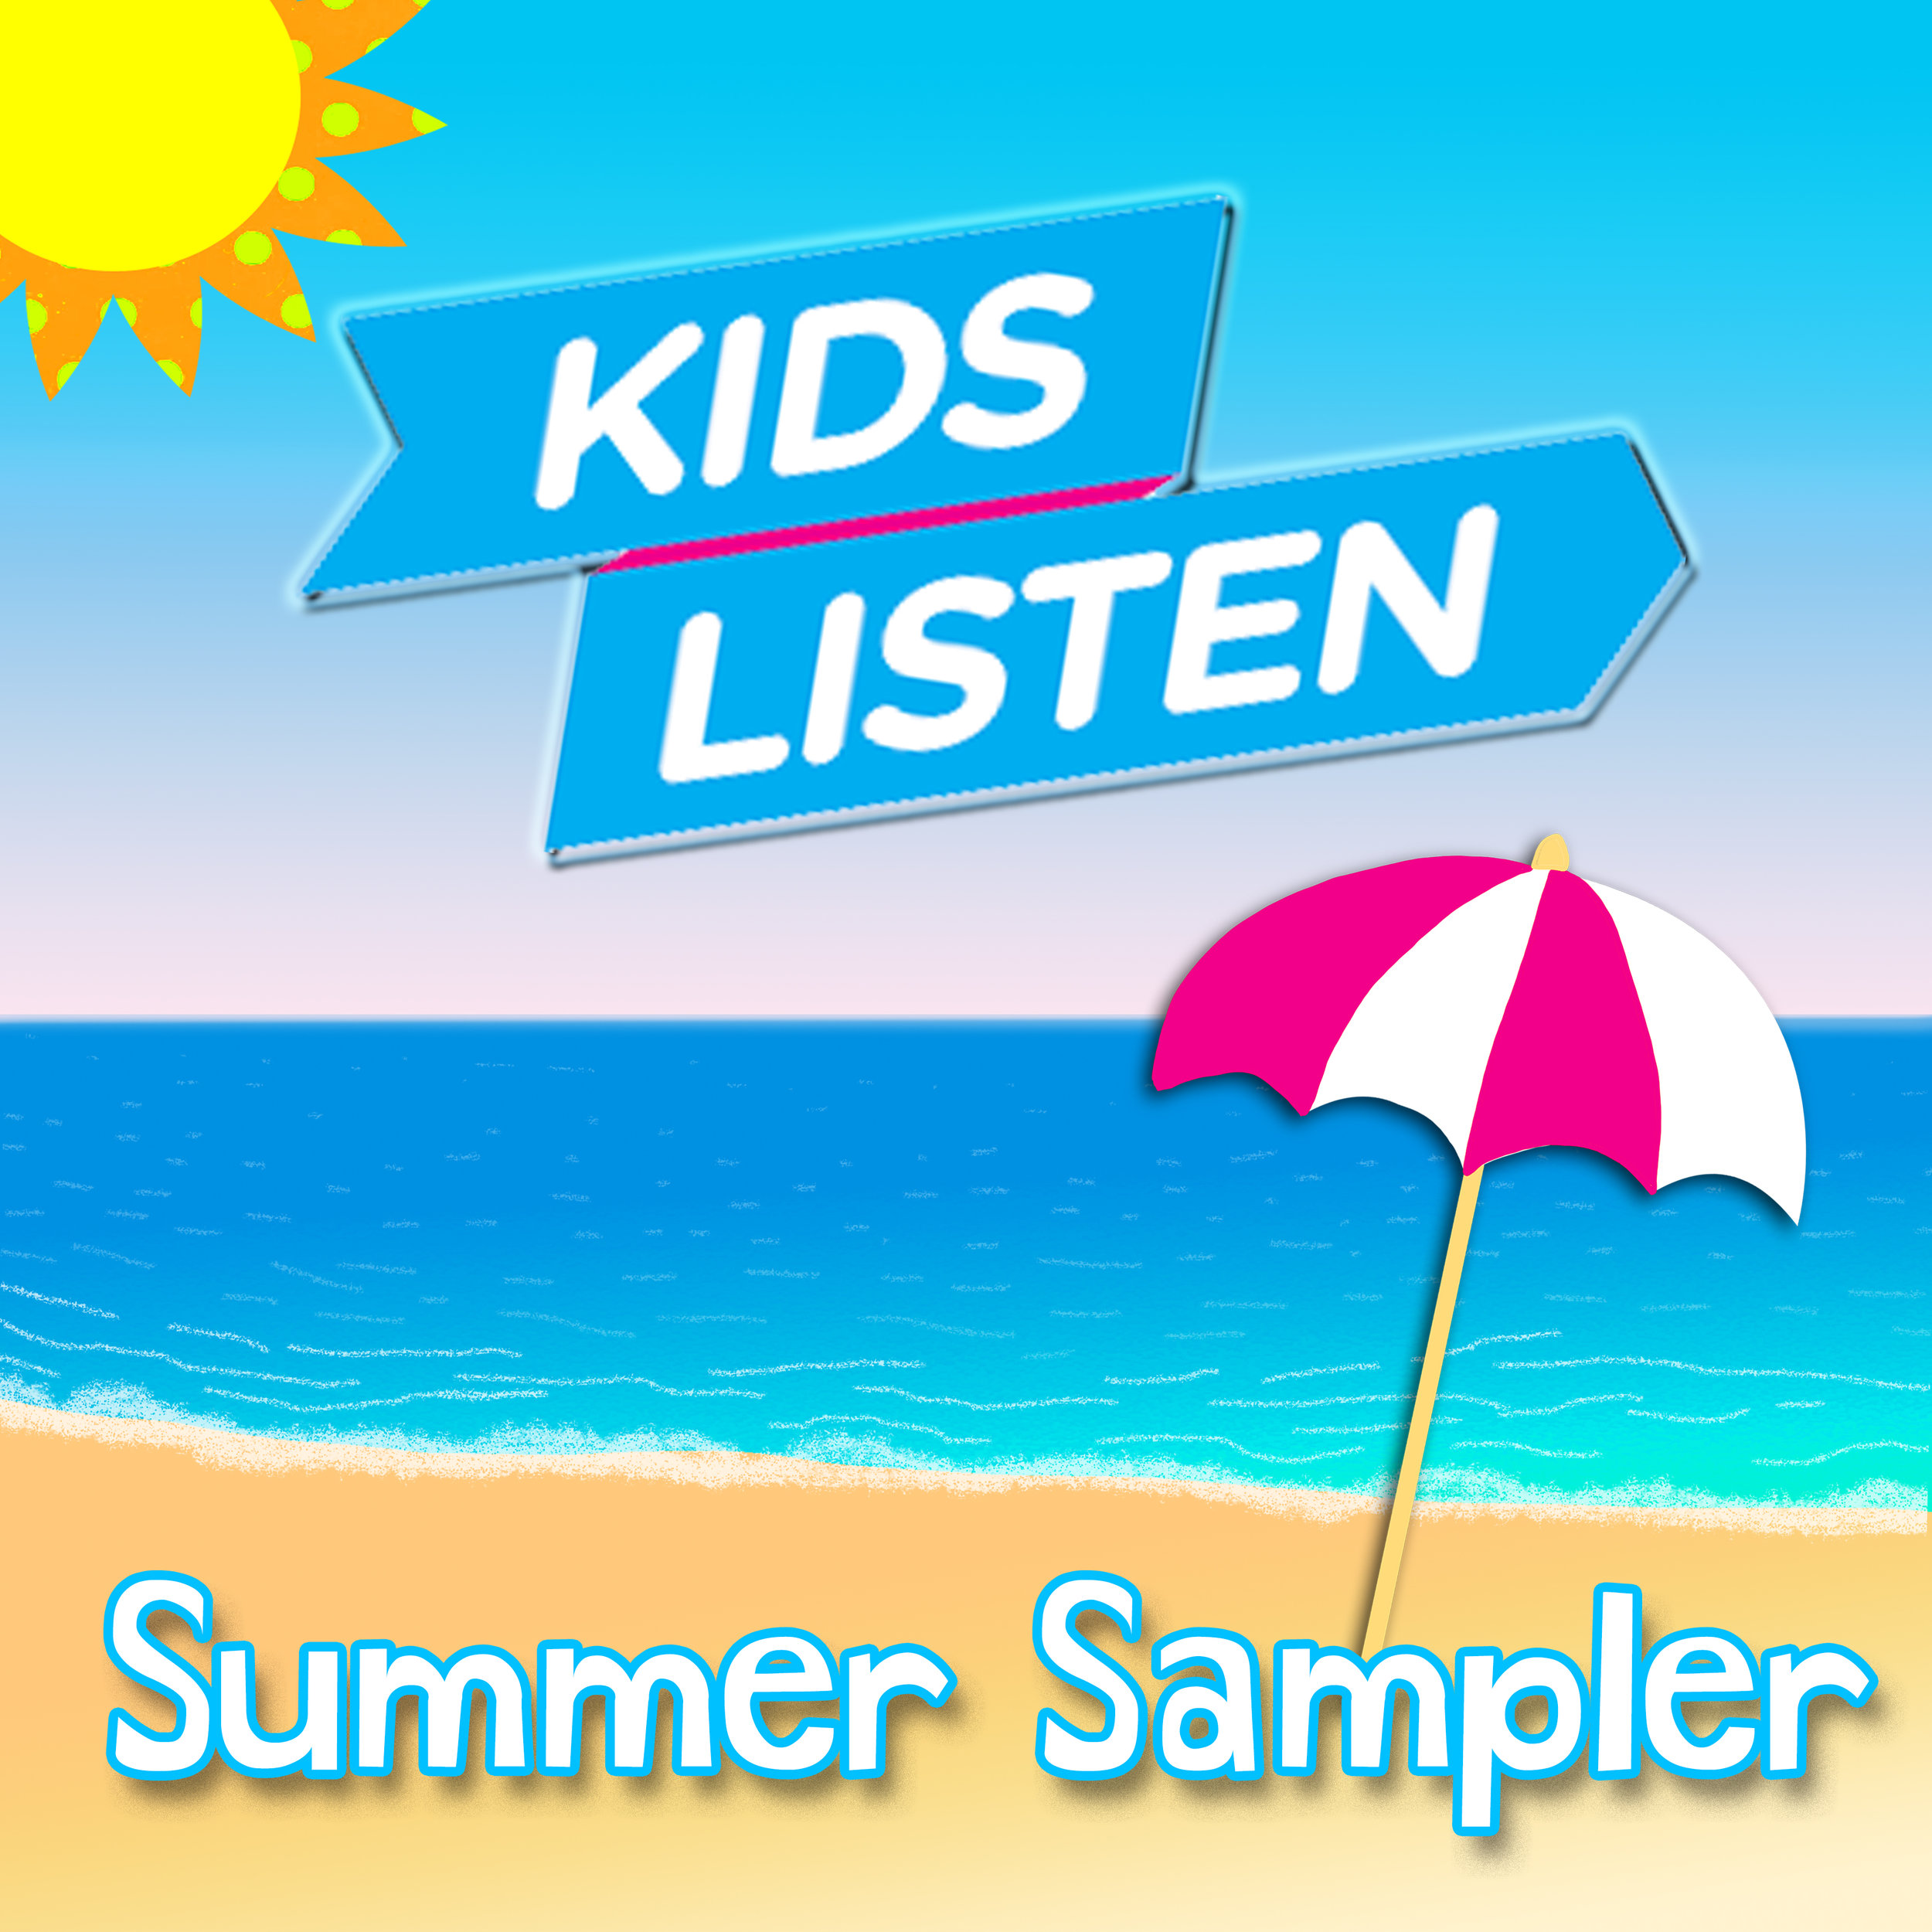 Kids Listen Summer Sampler_edited-1.jpg